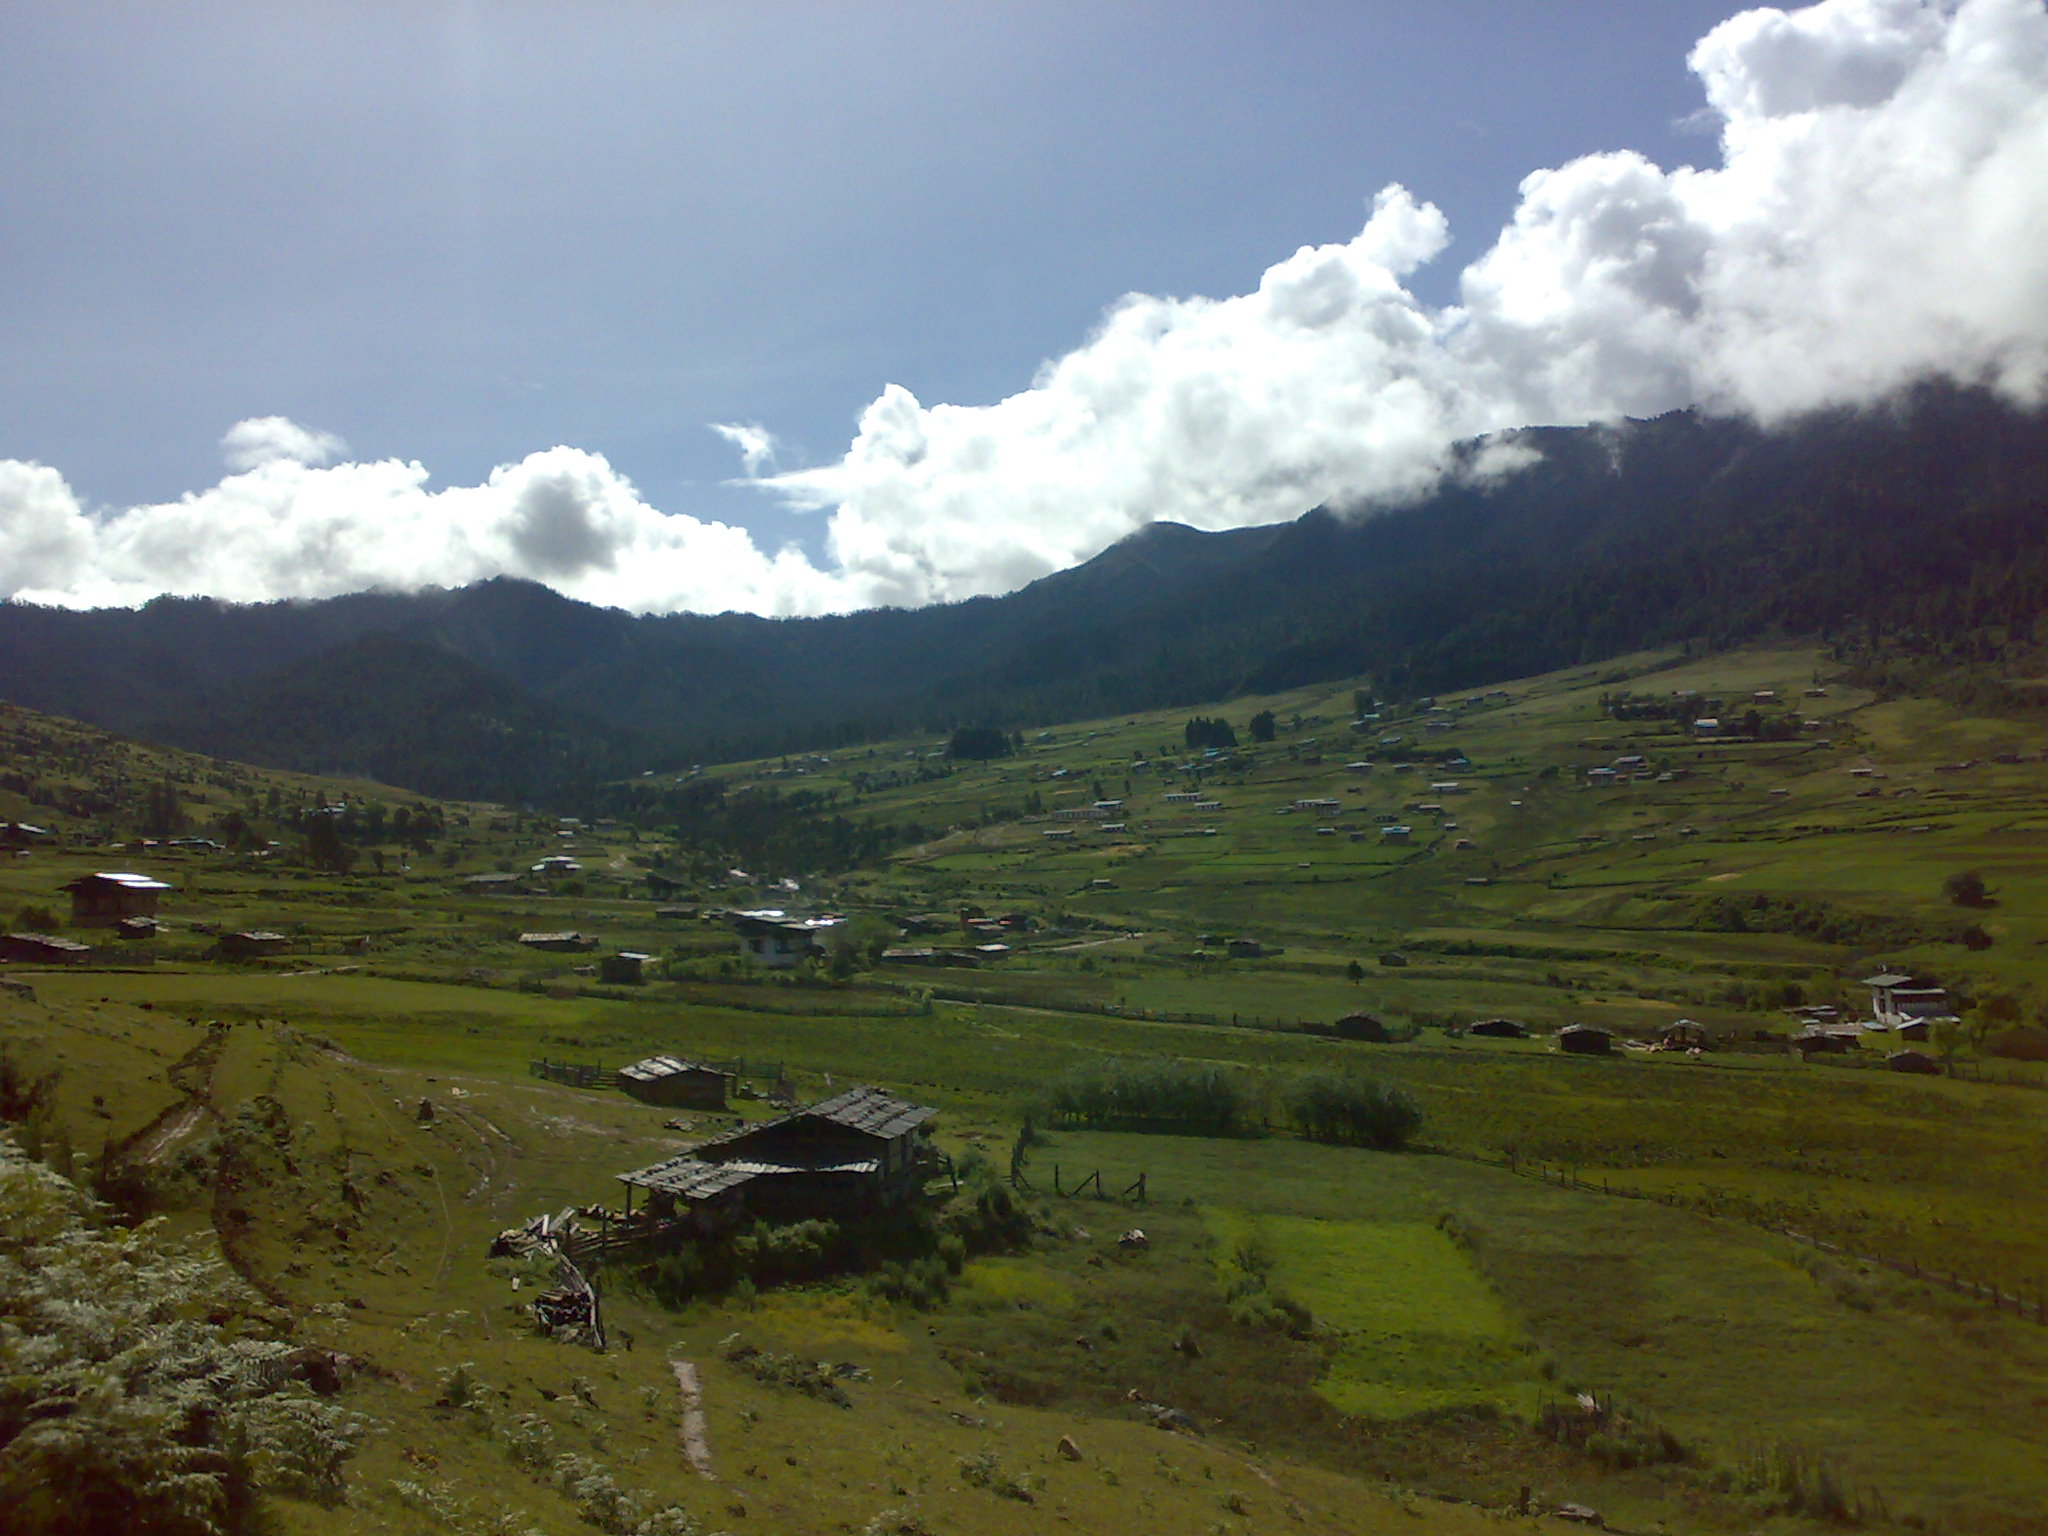 Gangtey Nature Trails and Hikes, Phobjikha Valley